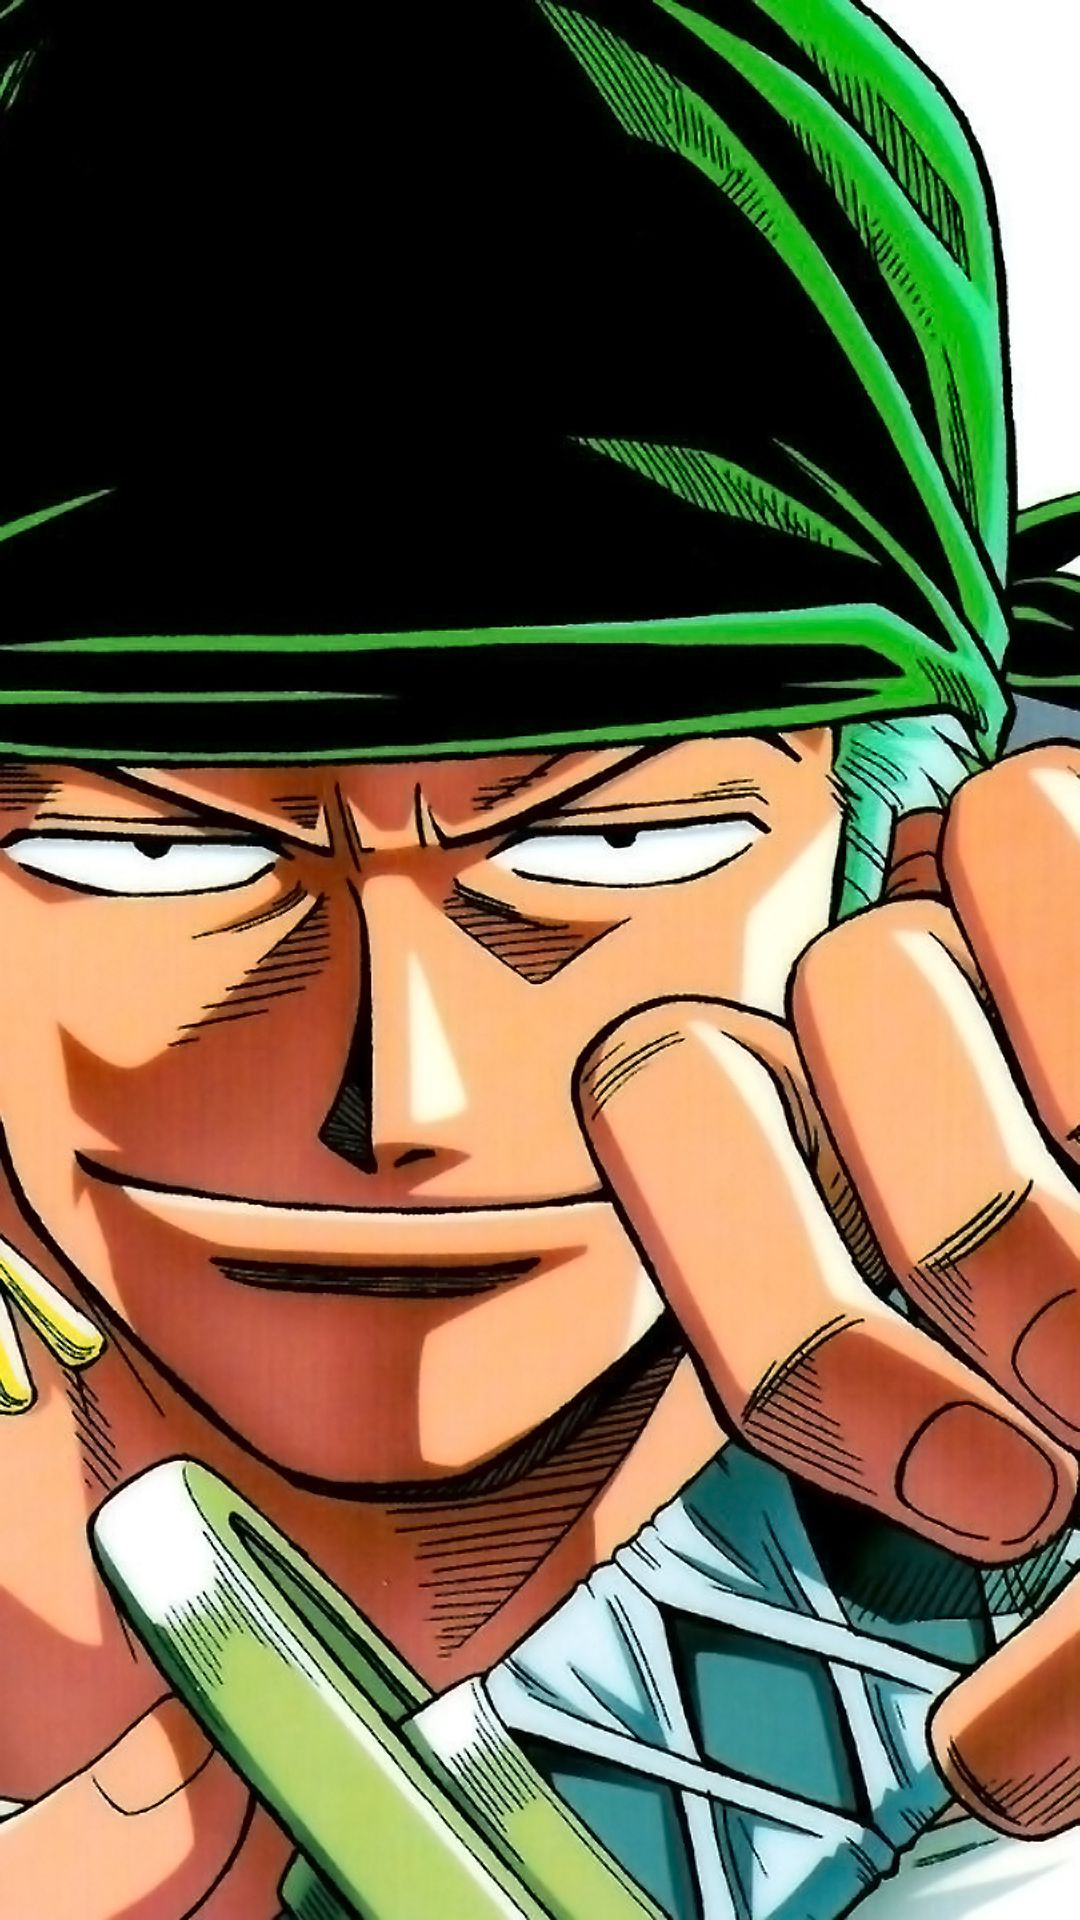 Roronoa Zoro Iphone Wallpaper Id Wallpaper 4k Iphone